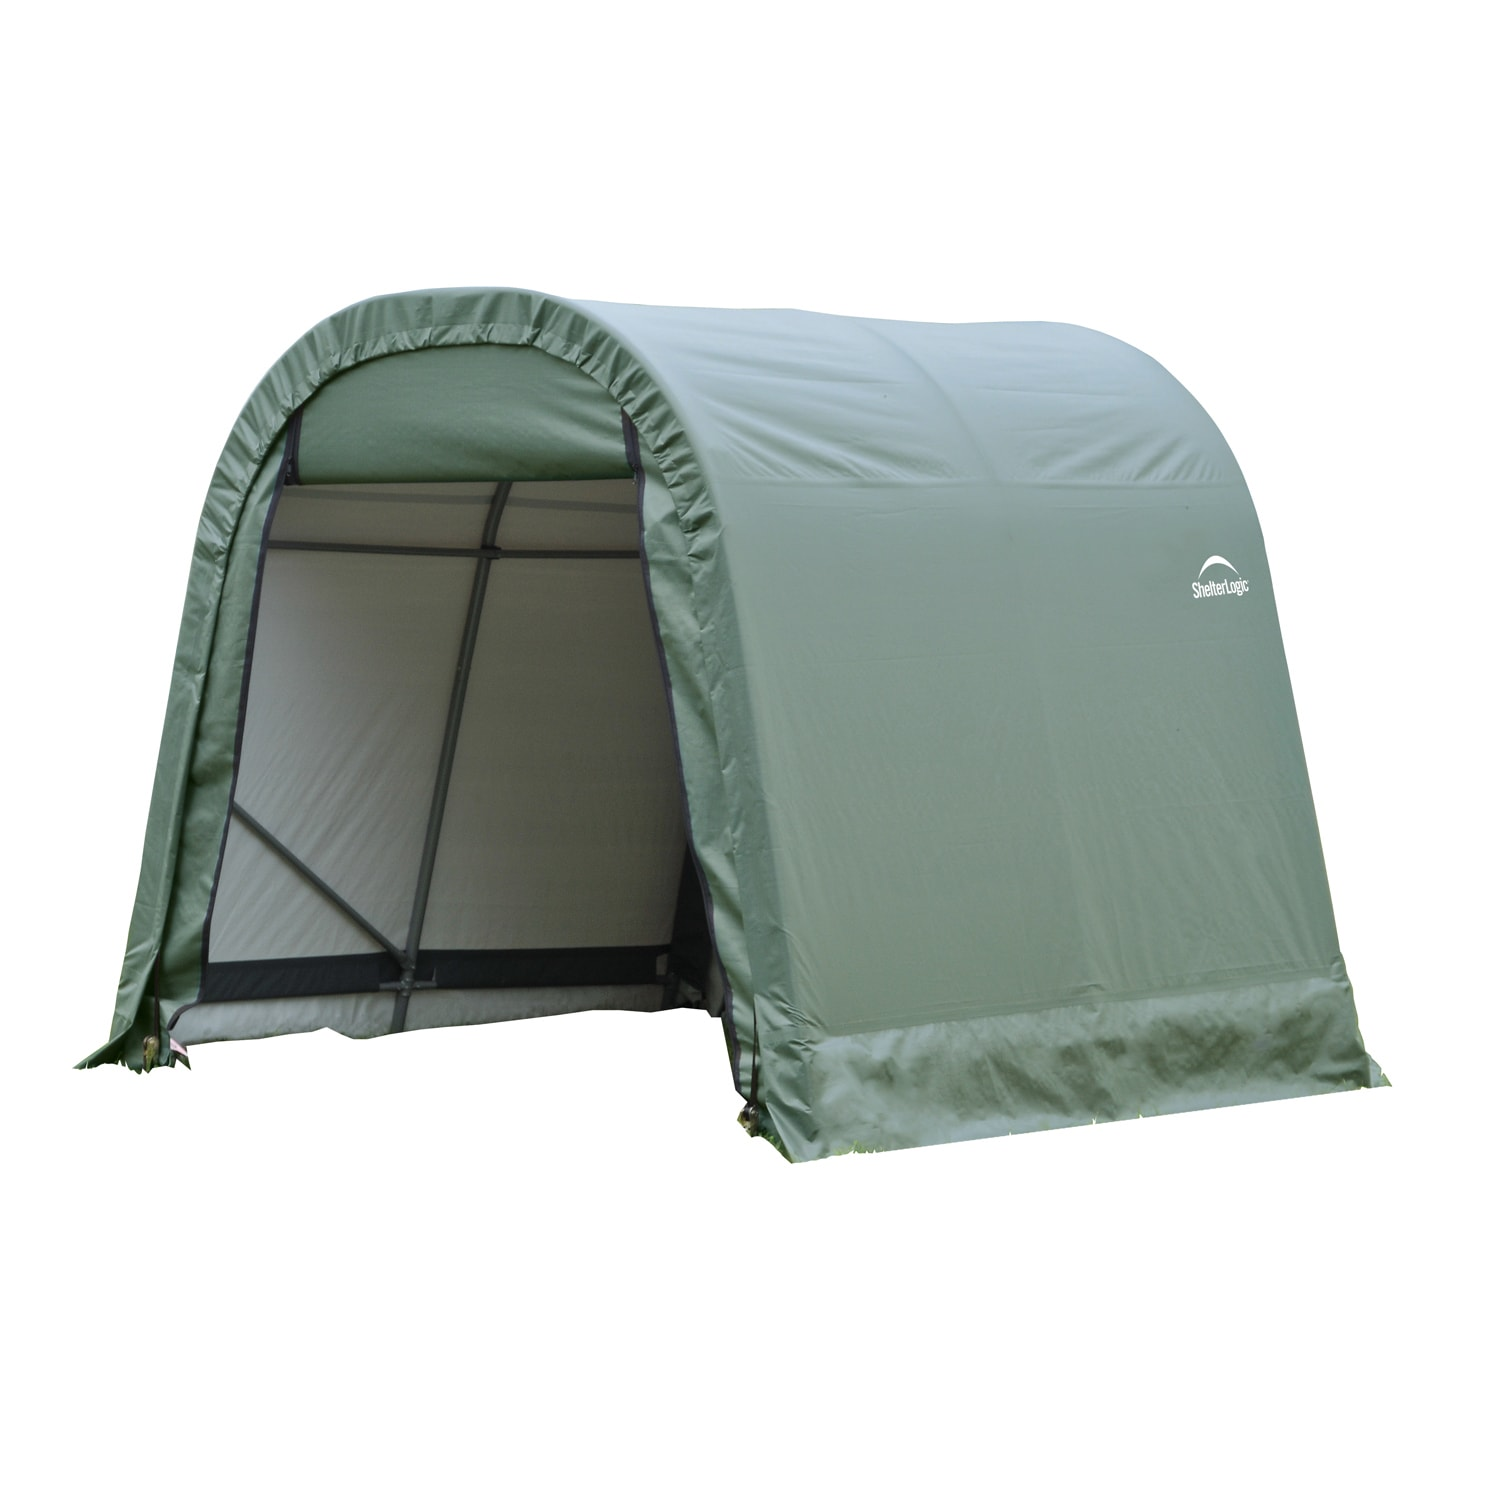 Shelterlogic 8' x 12' x 8'' Round Style Shelter, Green by ShelterLogic